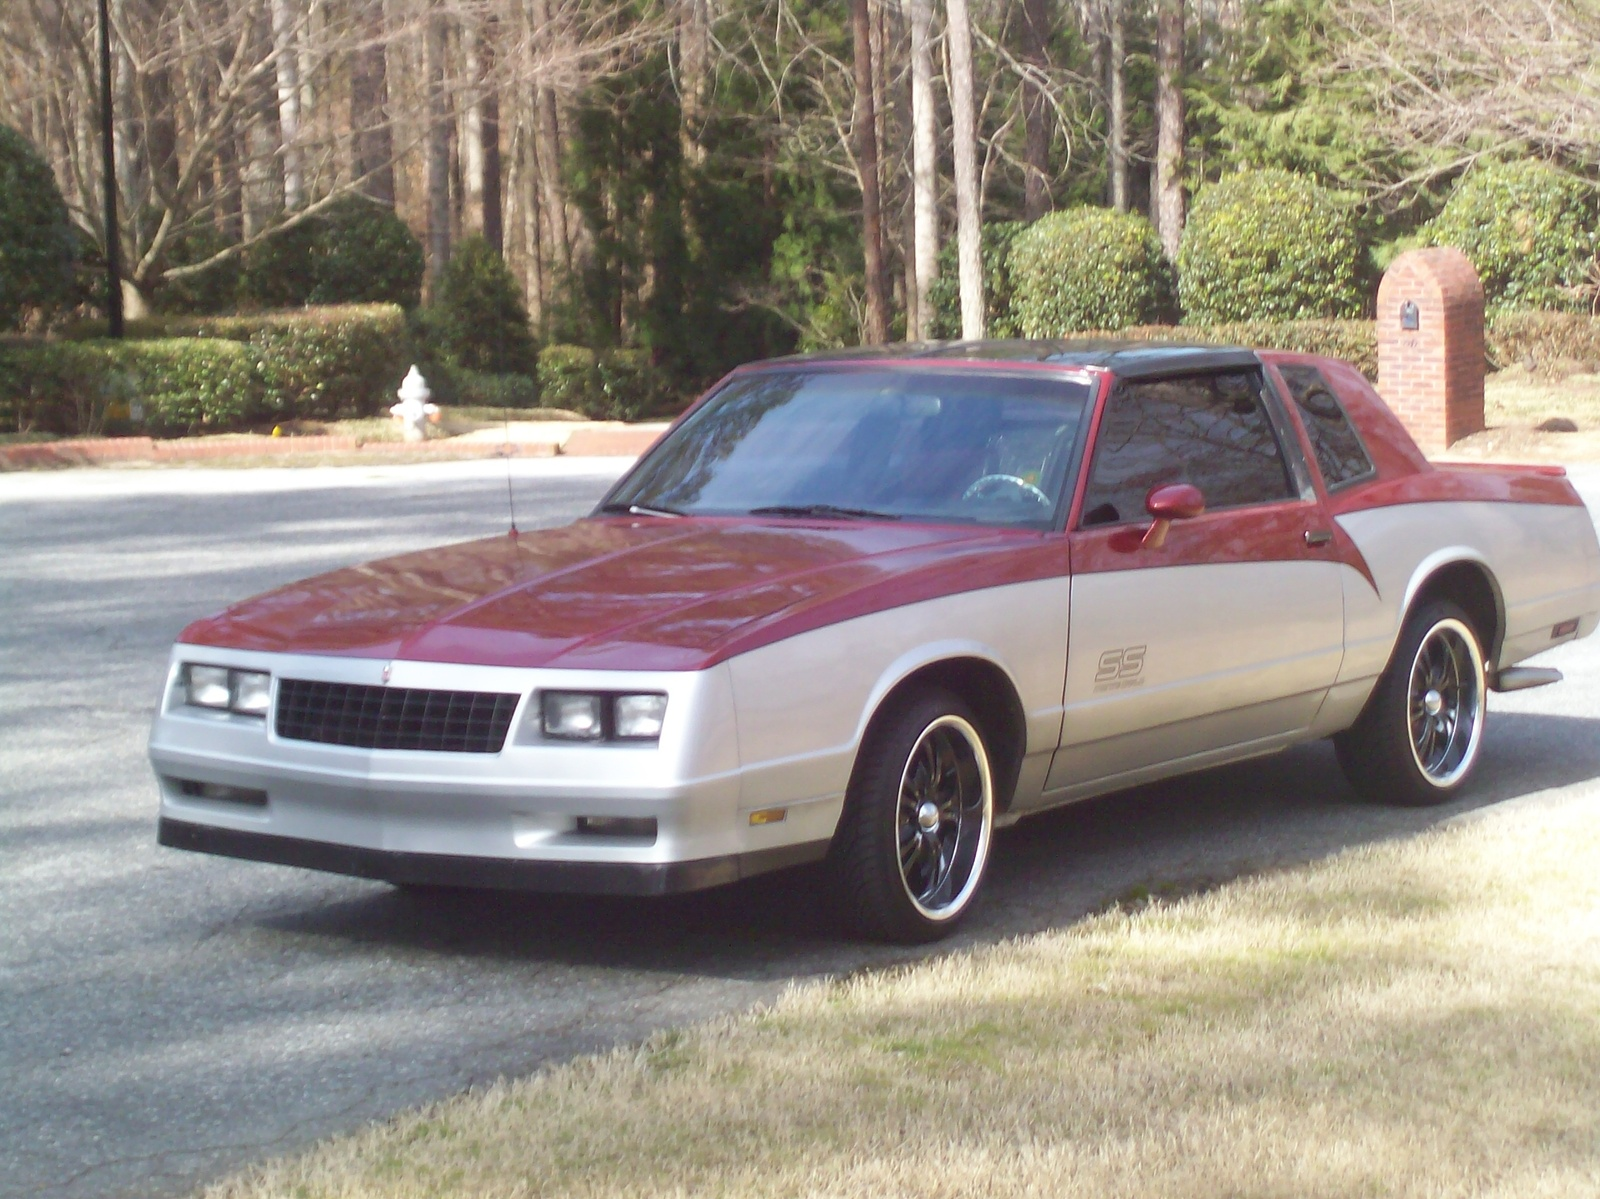 Chevrolet Monte Carlo SS image #5